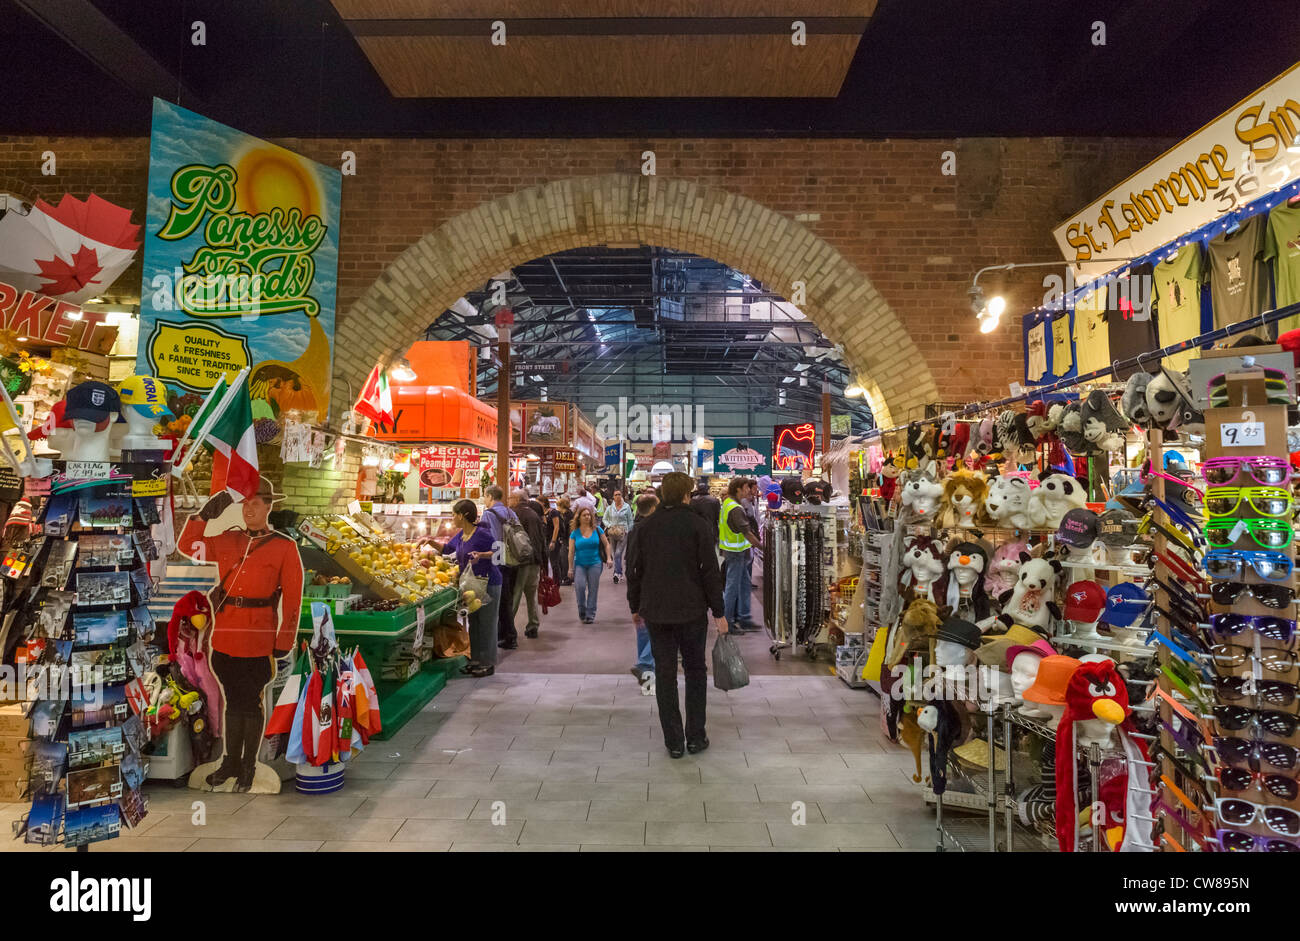 Interior of St Lawrence Market, Toronto, Ontario, Canada - Stock Image